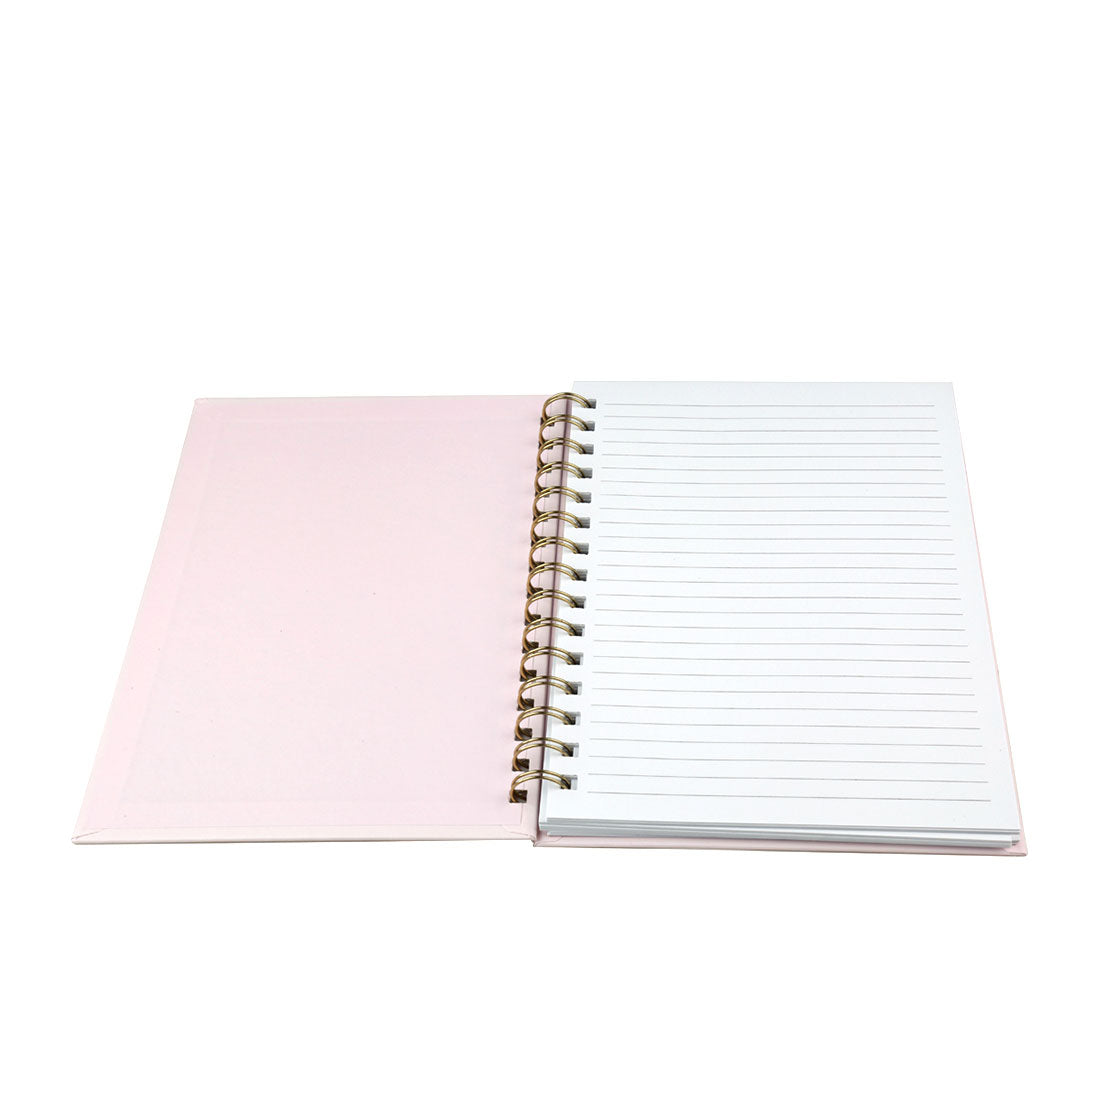 MINISO Spiral Wirebound Book, Diary Journal Writing Pad, Pink